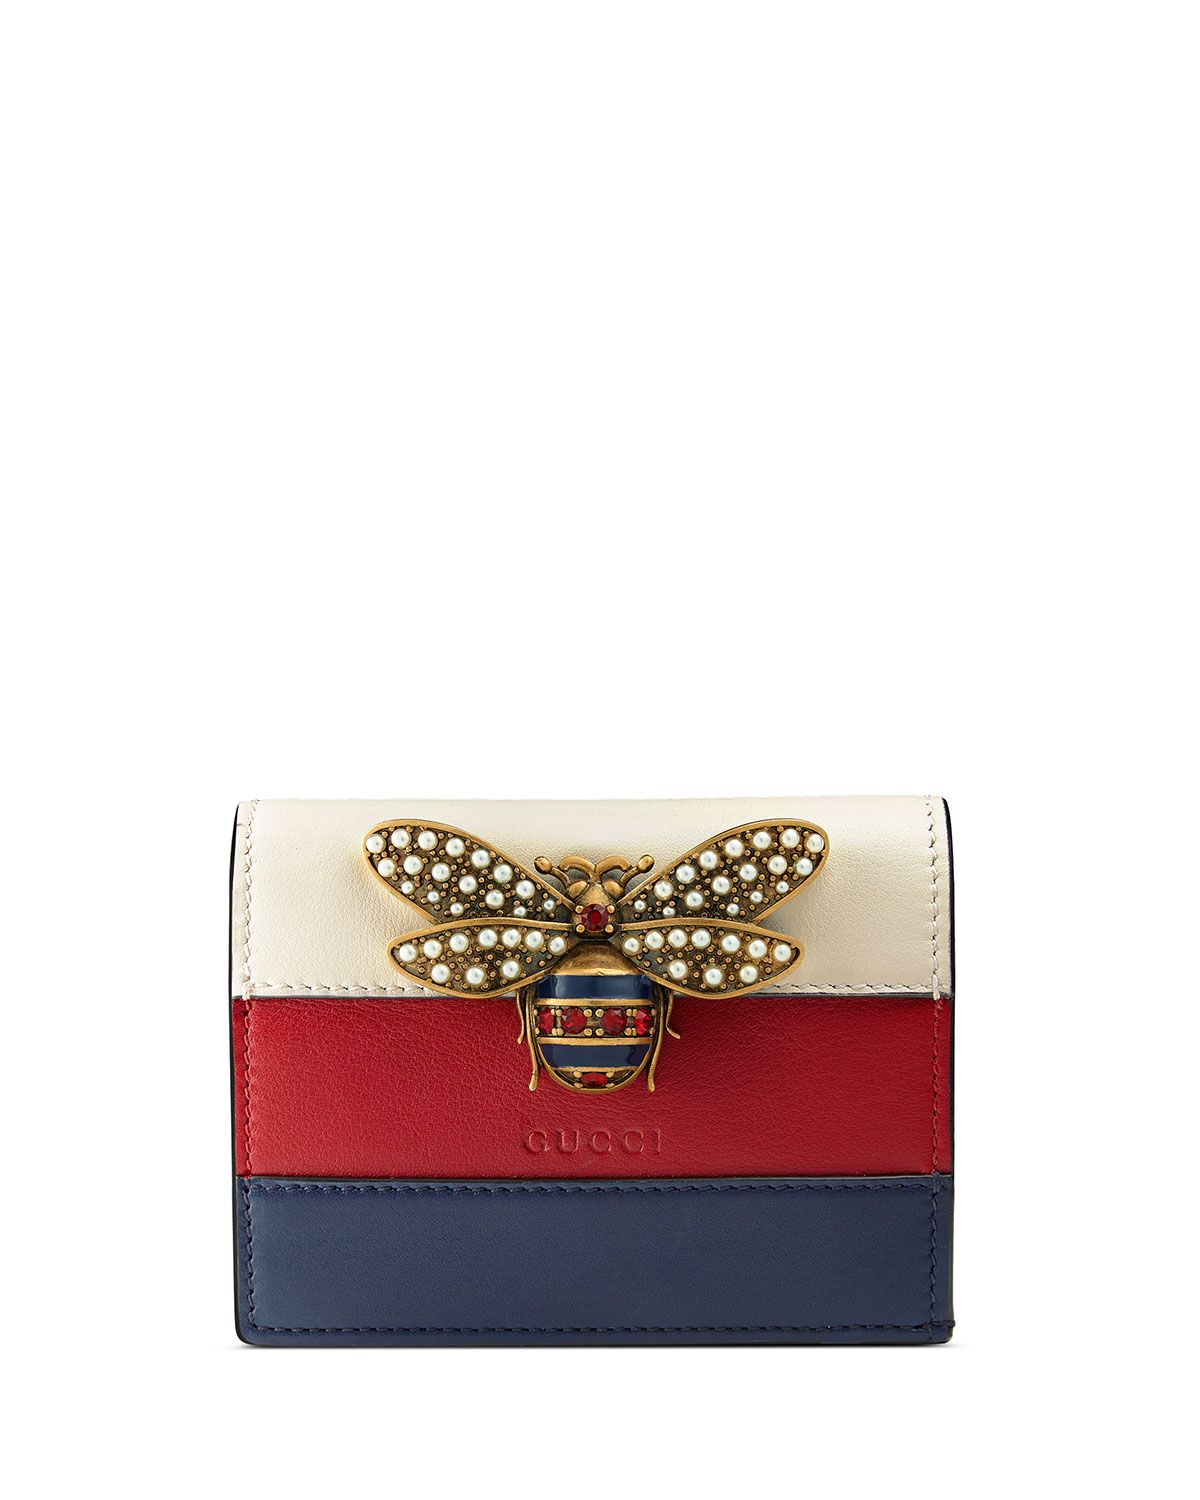 3b9147eb0 Fly Ornament Card Case | Gucci | Gucci, Gucci clutch, Fashion